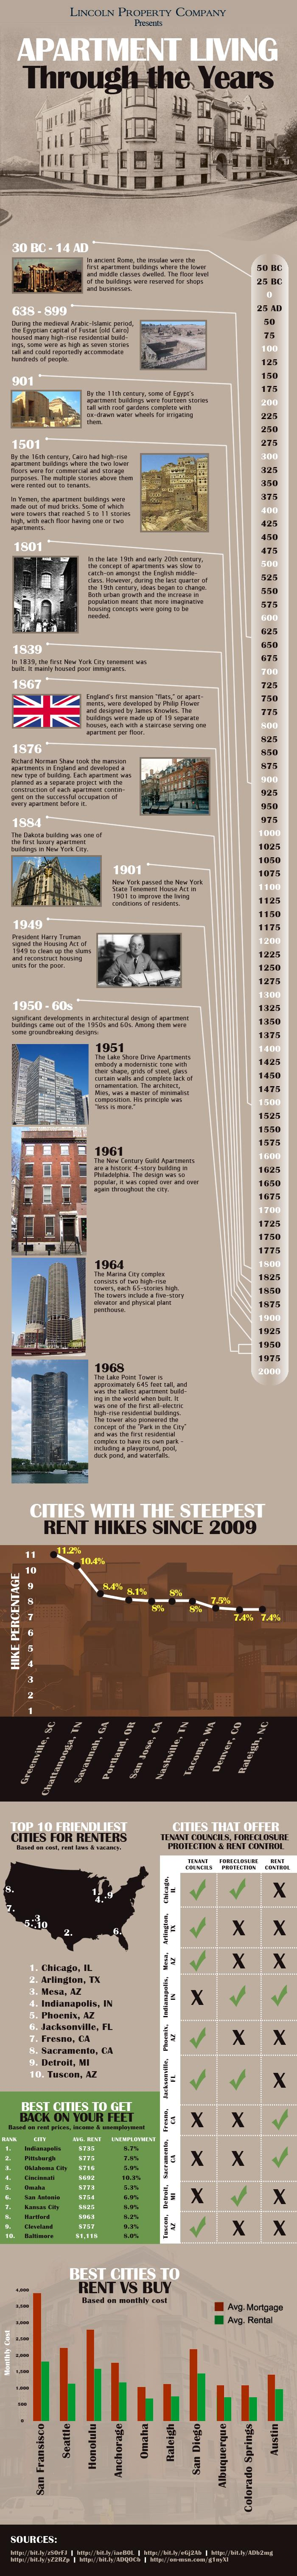 Apartments For Rent Through The Years Infographic – Affordable Apartments In Chicago, Denver & More – Cities With Cheapest Rent